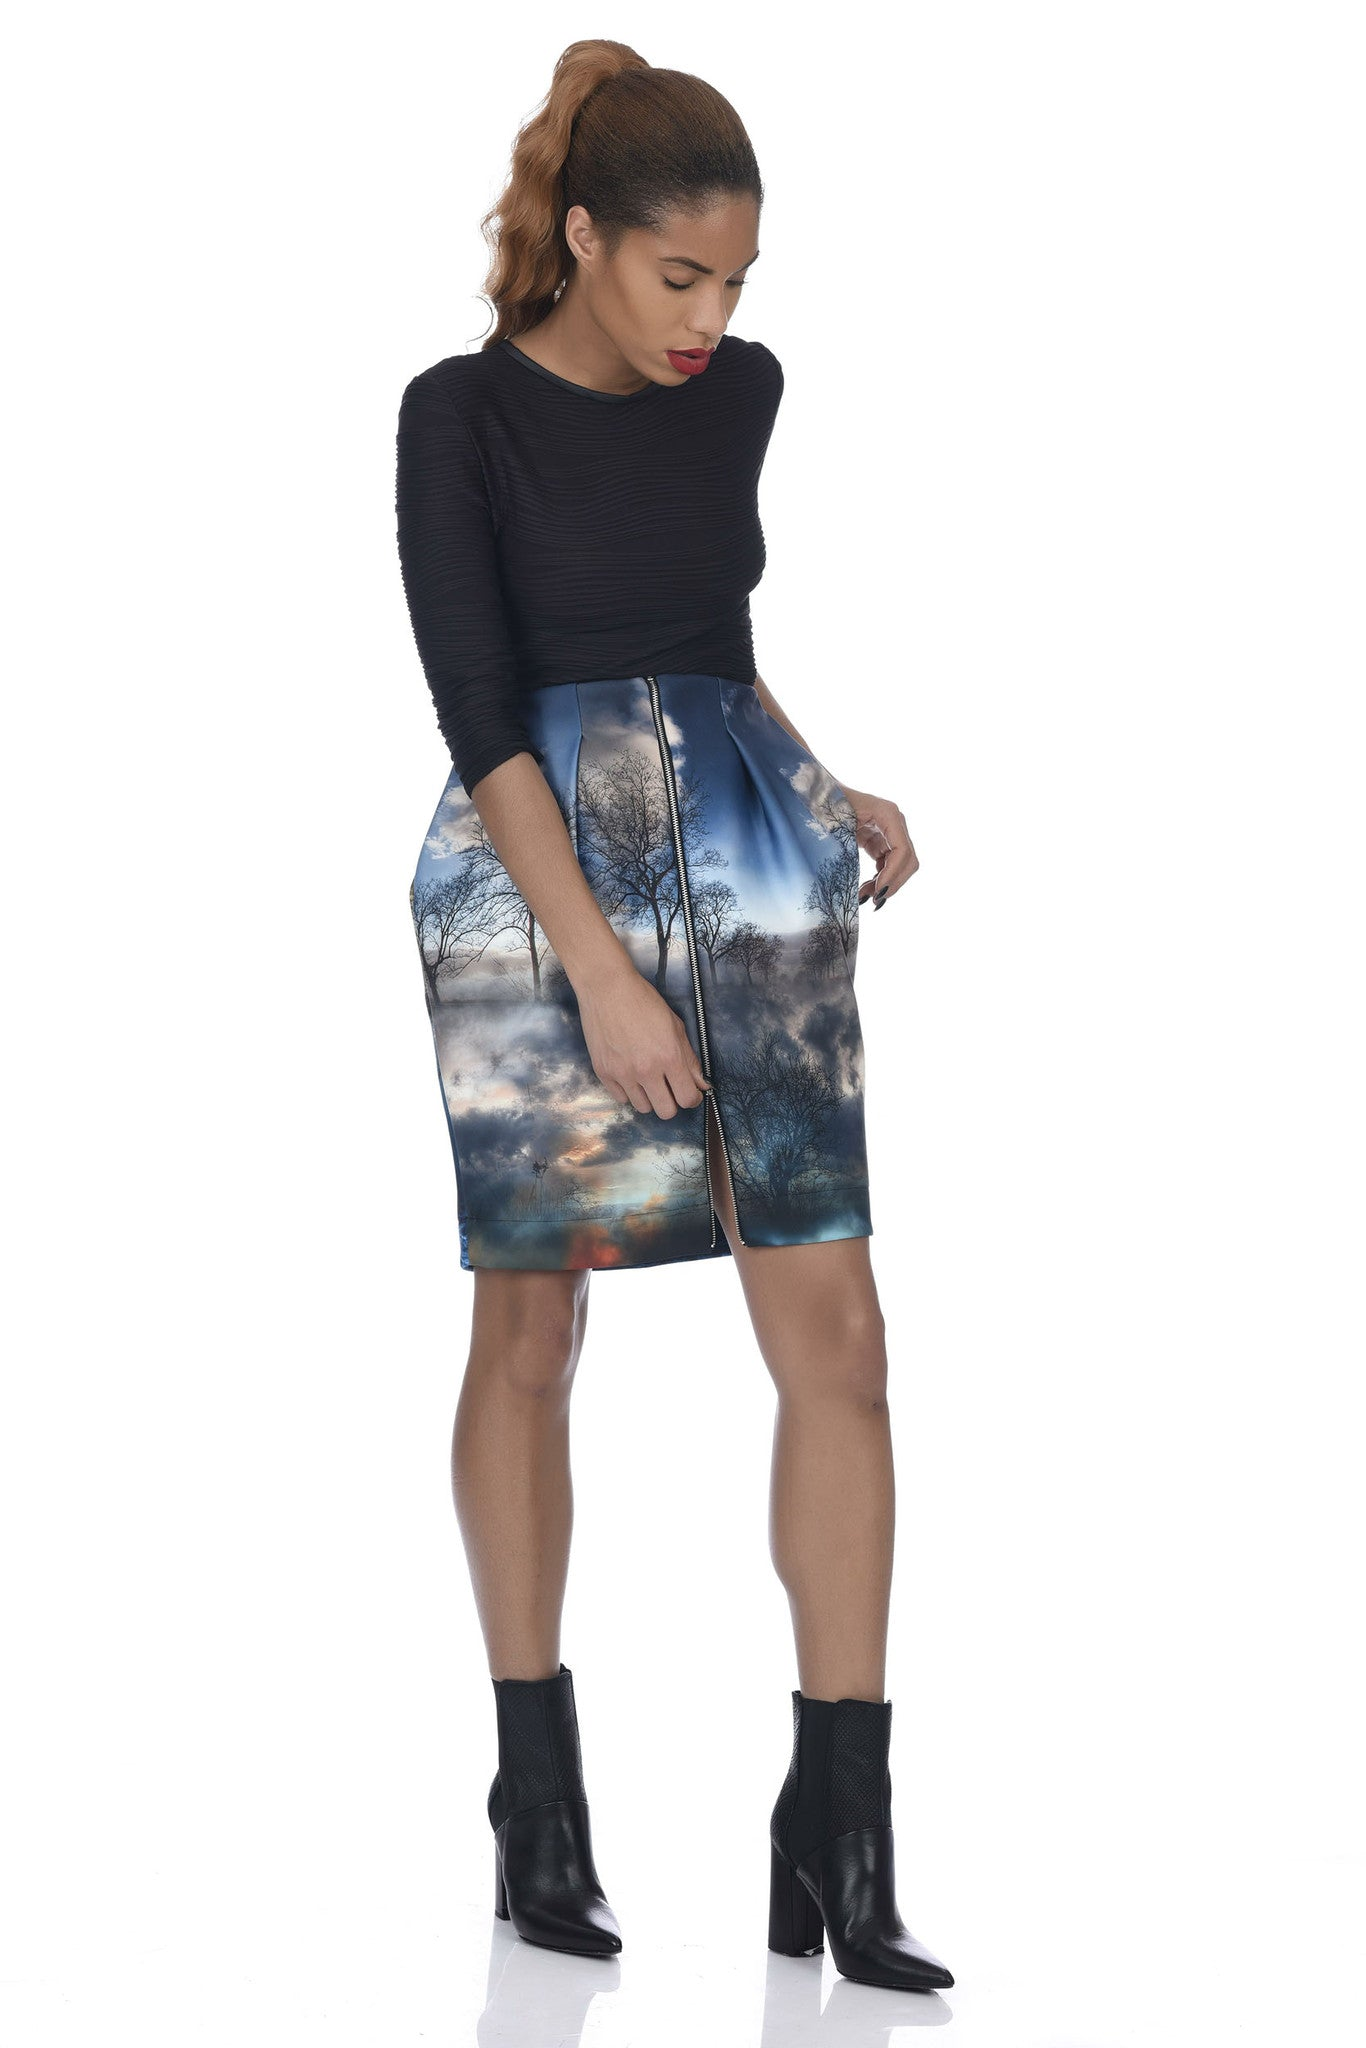 Chaos Print 2-Way Zipper Front Neoprene Skirt